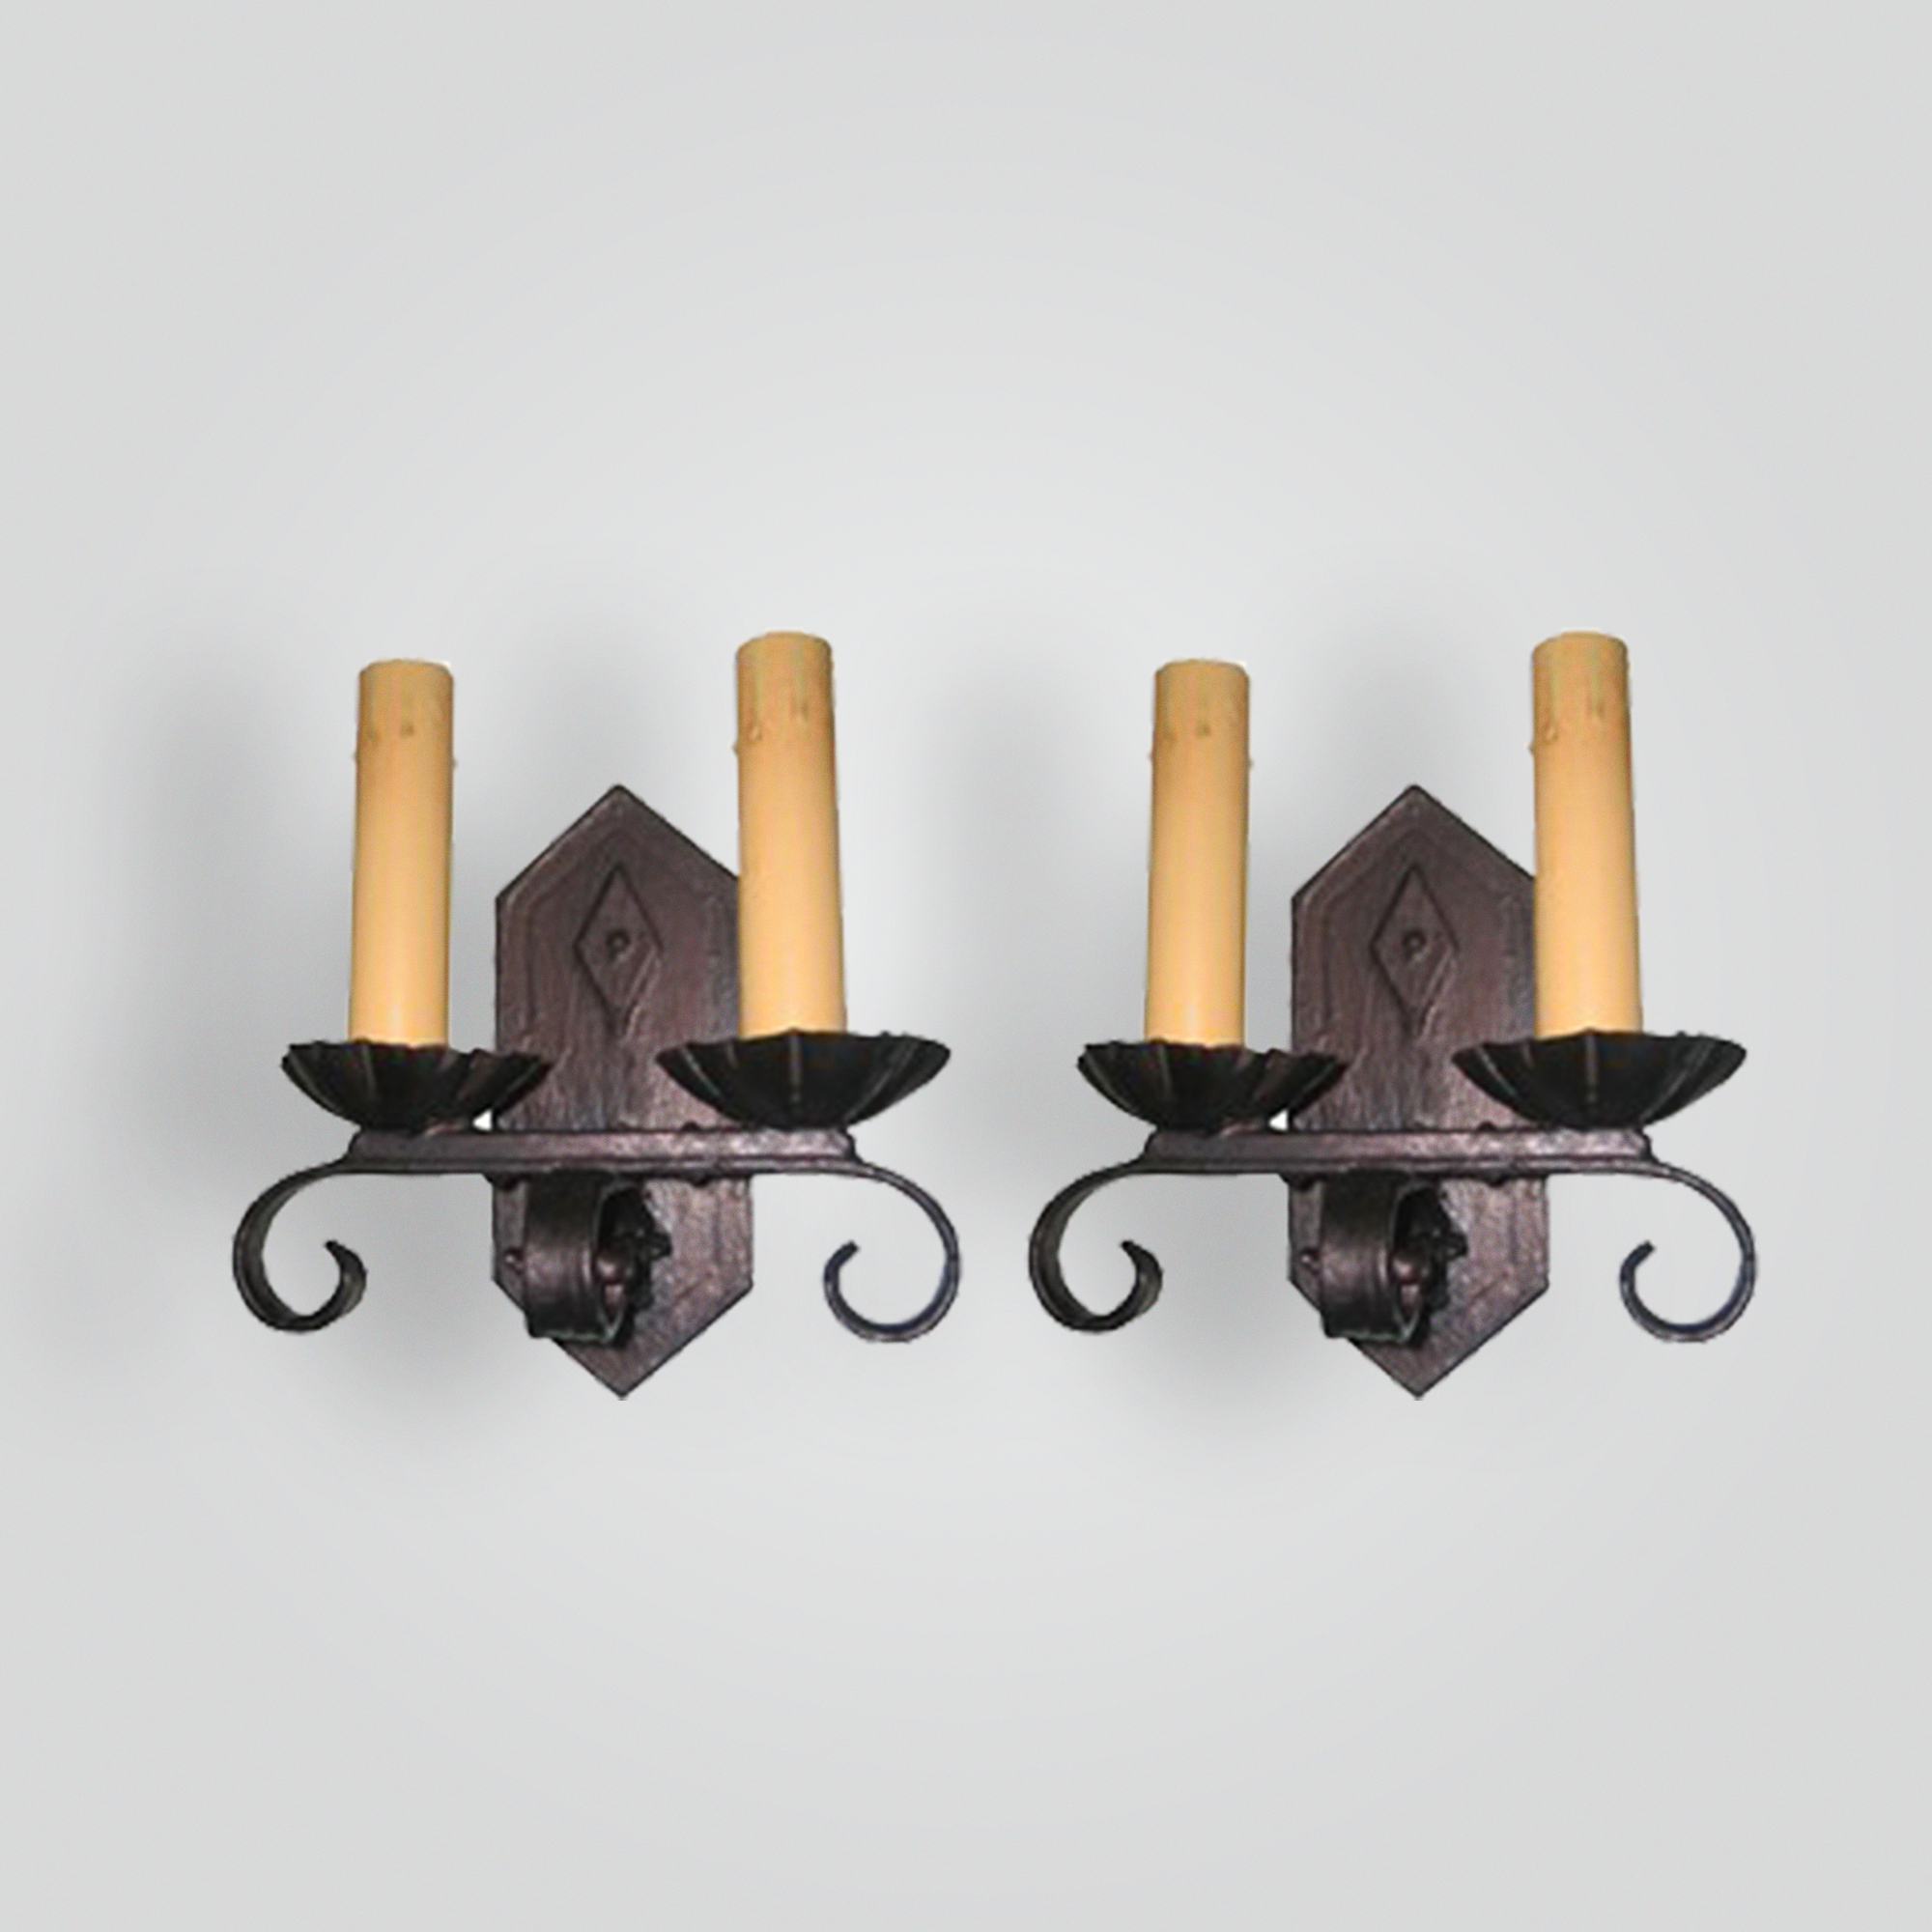 5210-mb2-ir-s-ba Revival Sconce – ADG Lighting Collection